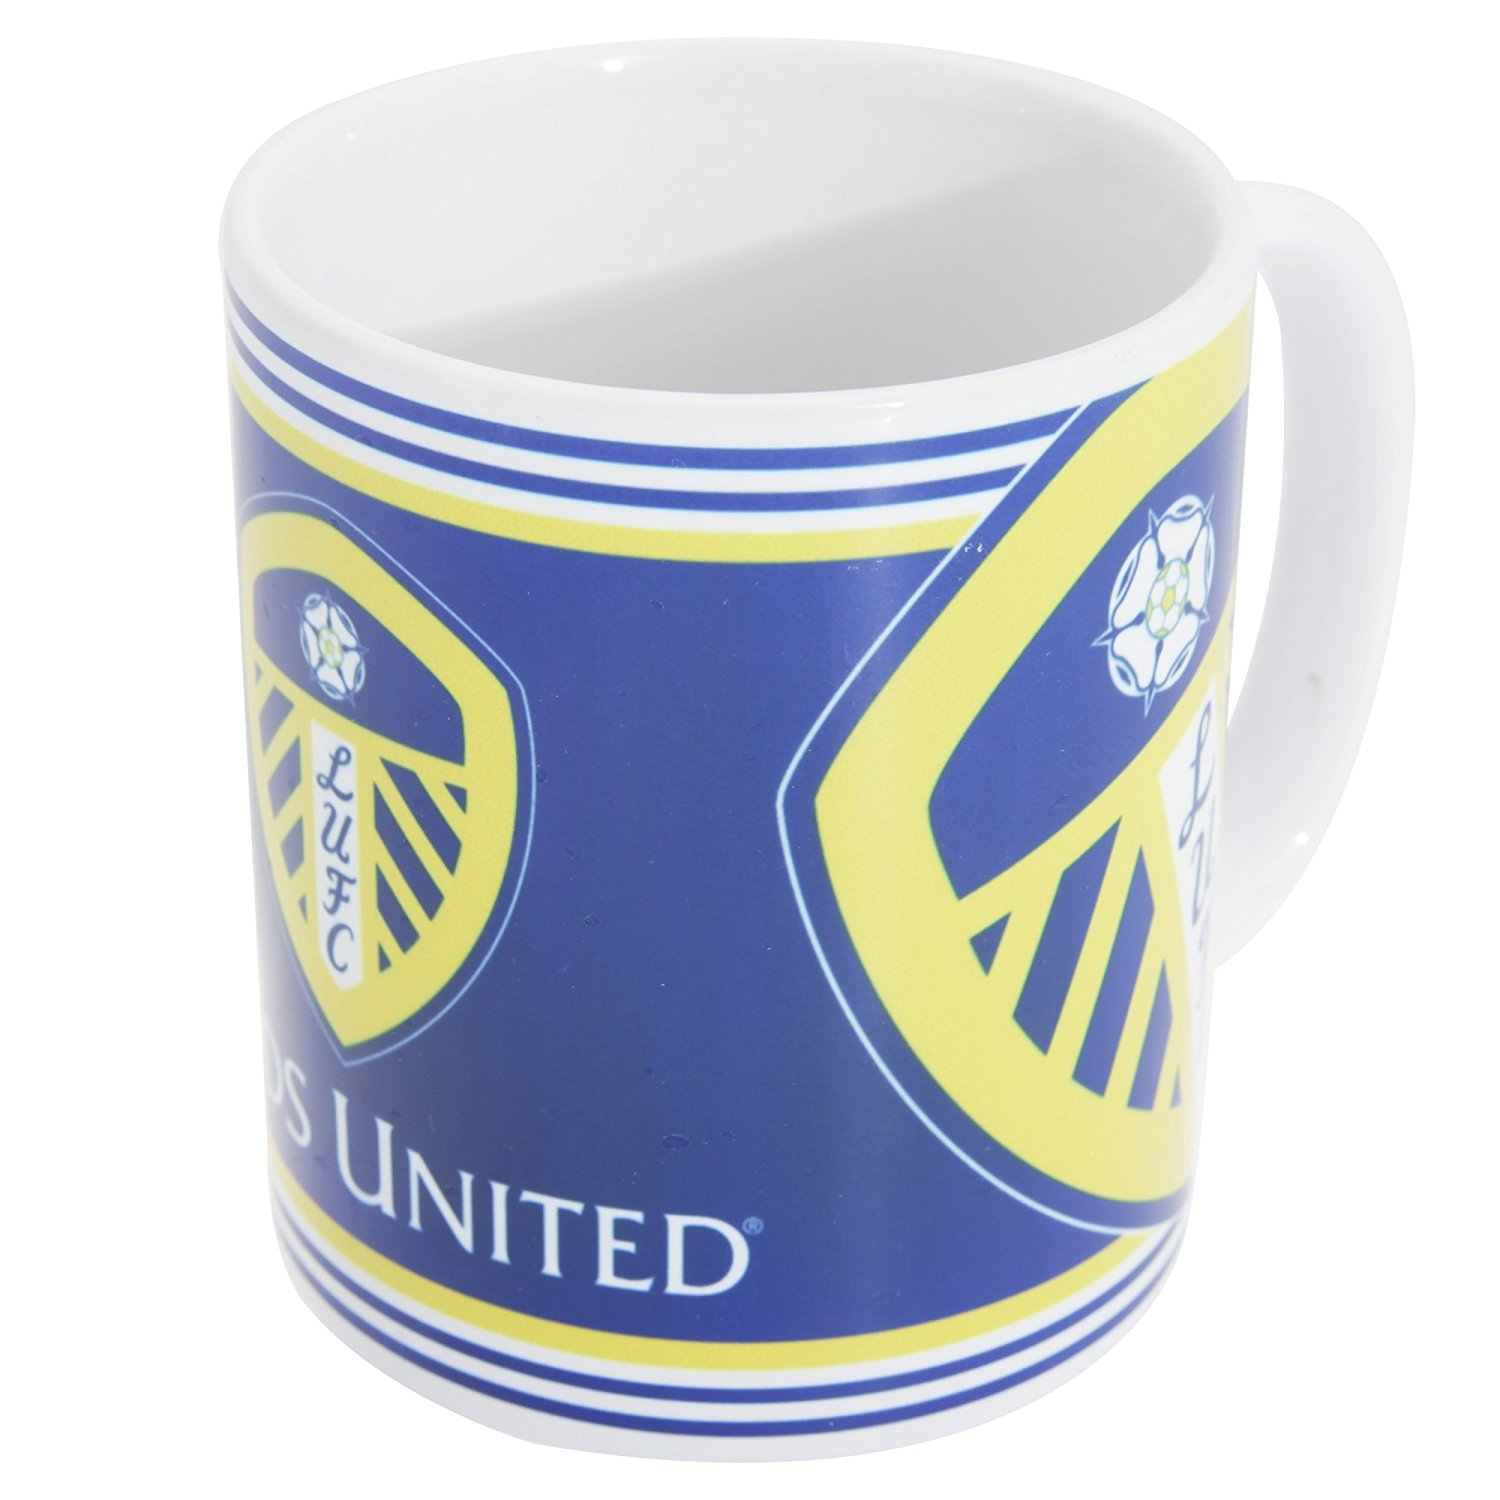 Leeds United F C Leeds United F C Leeds United F C Official Leeds United Fc Three Crest Ceramic Mug By Leeds United F C Amazon In Sports Fitness Outdoors